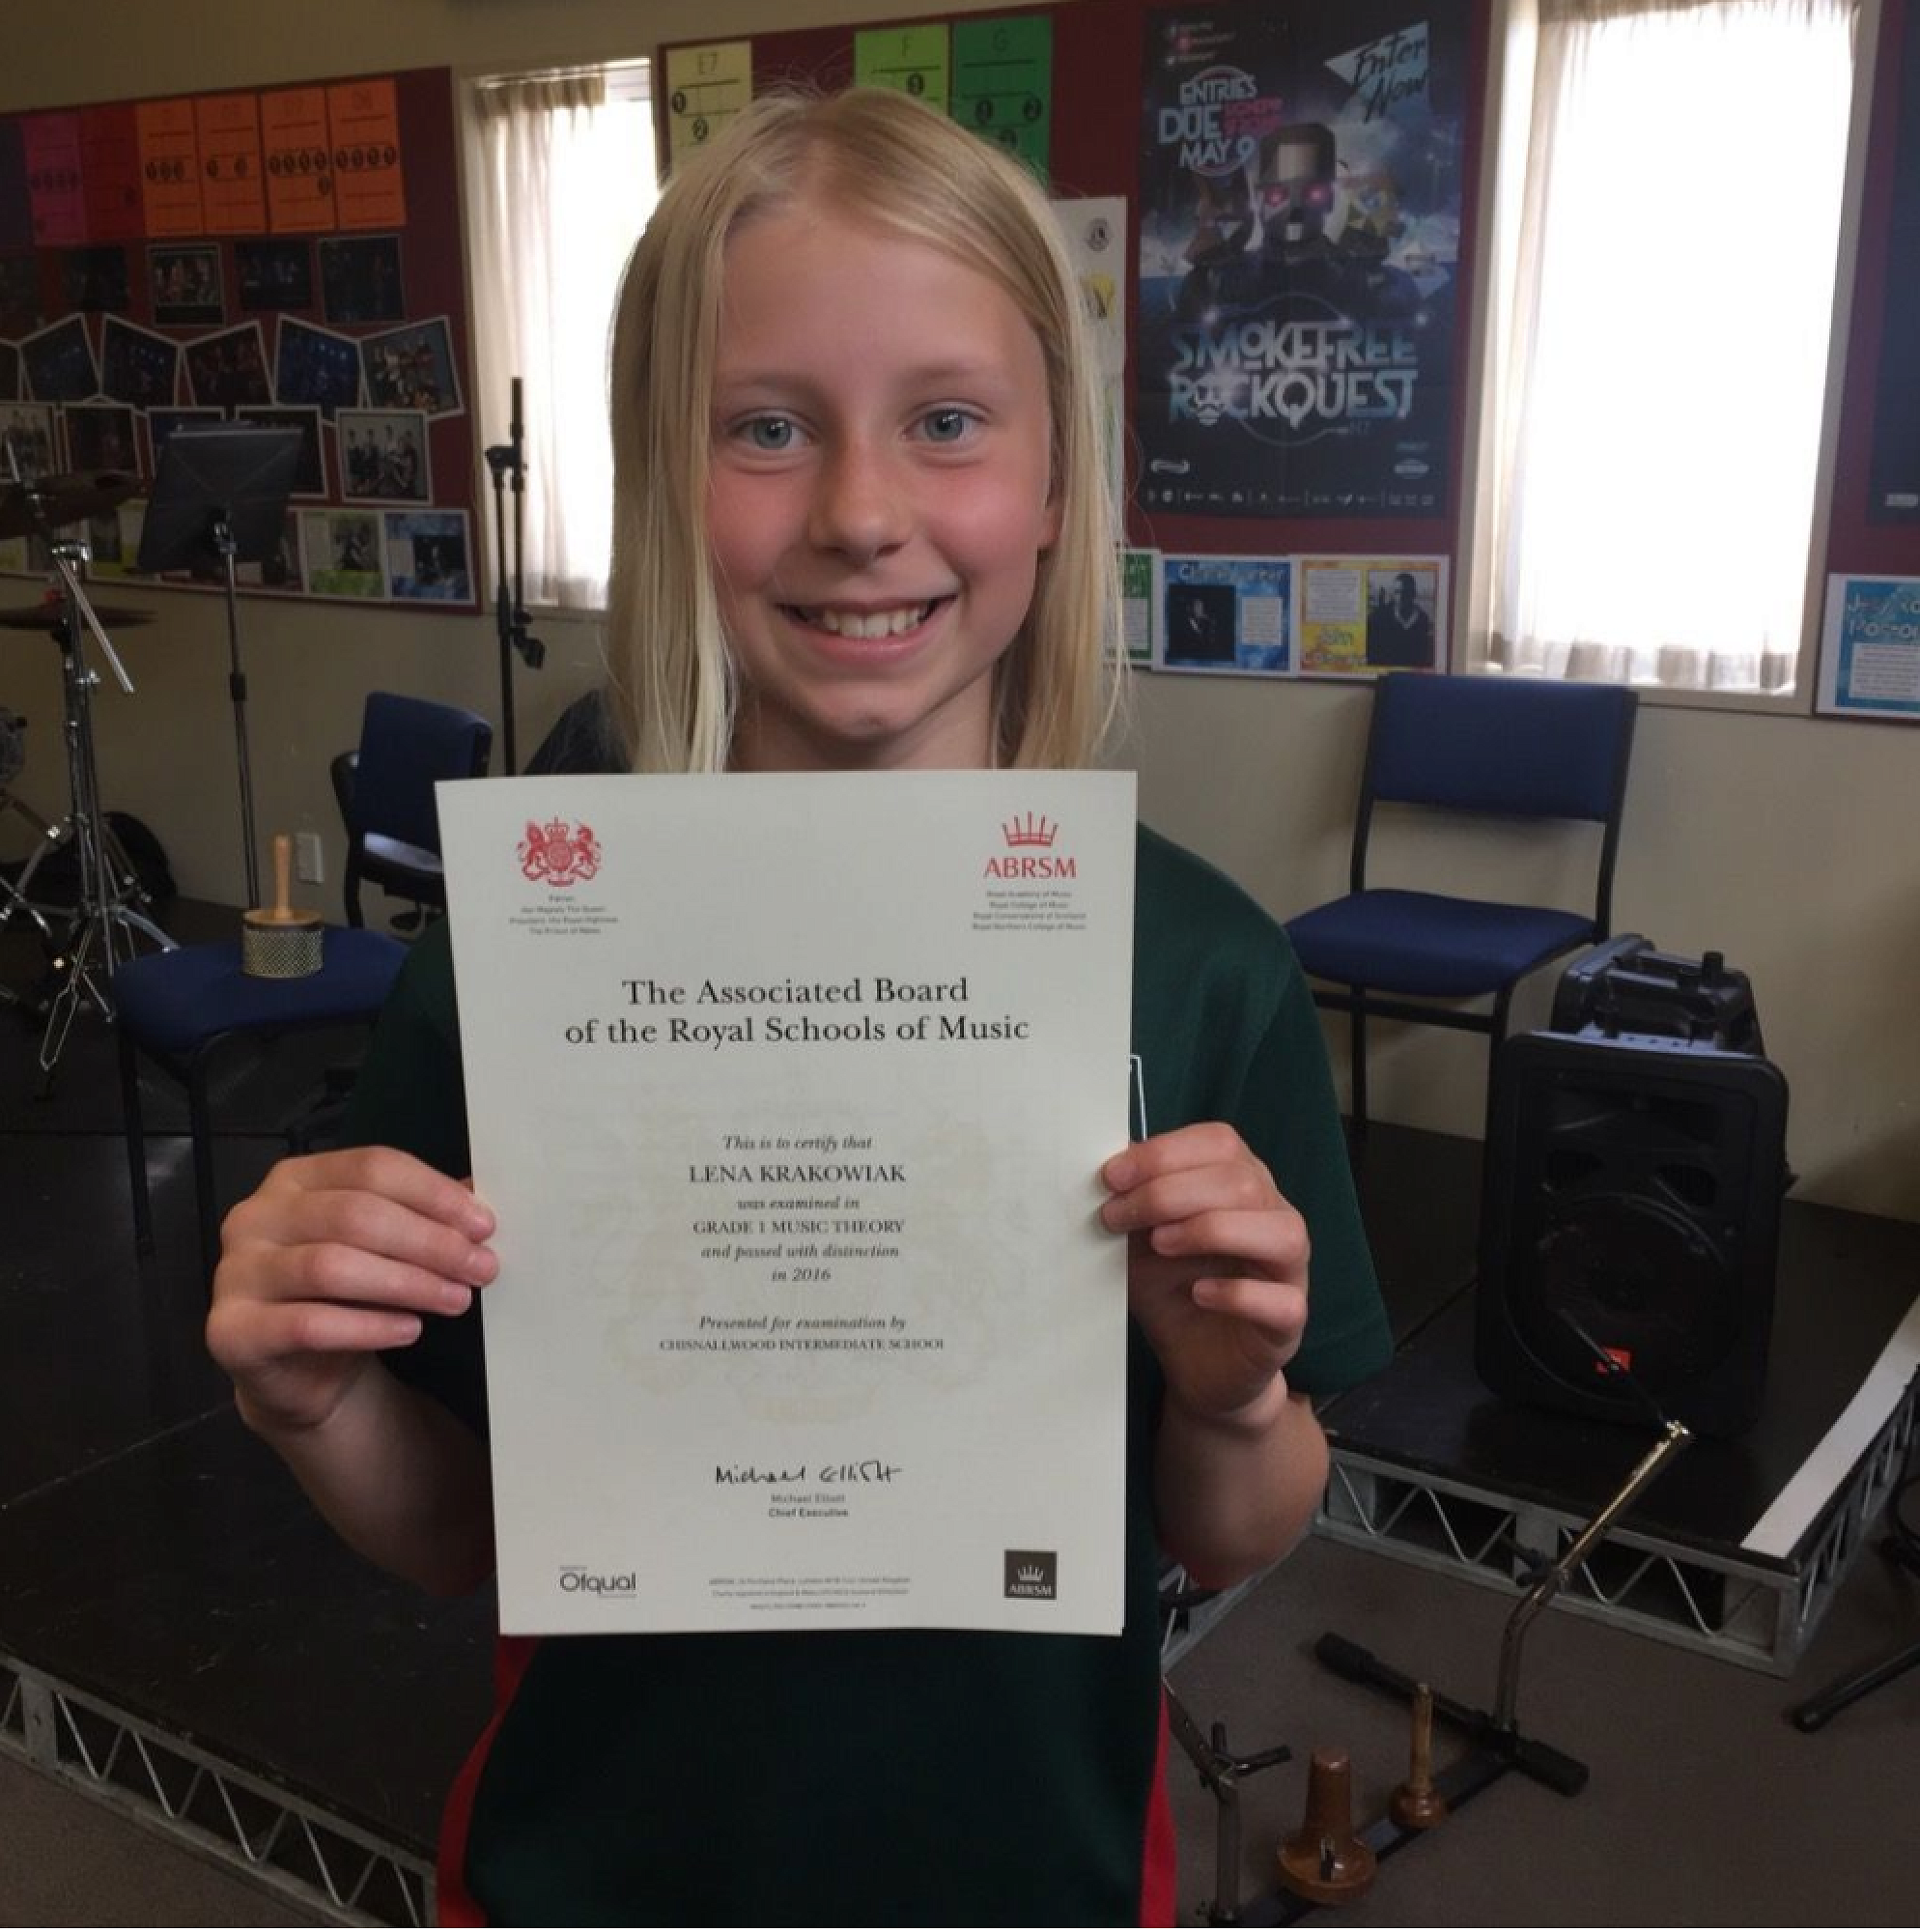 Lena Krakowiak with her theory certificate